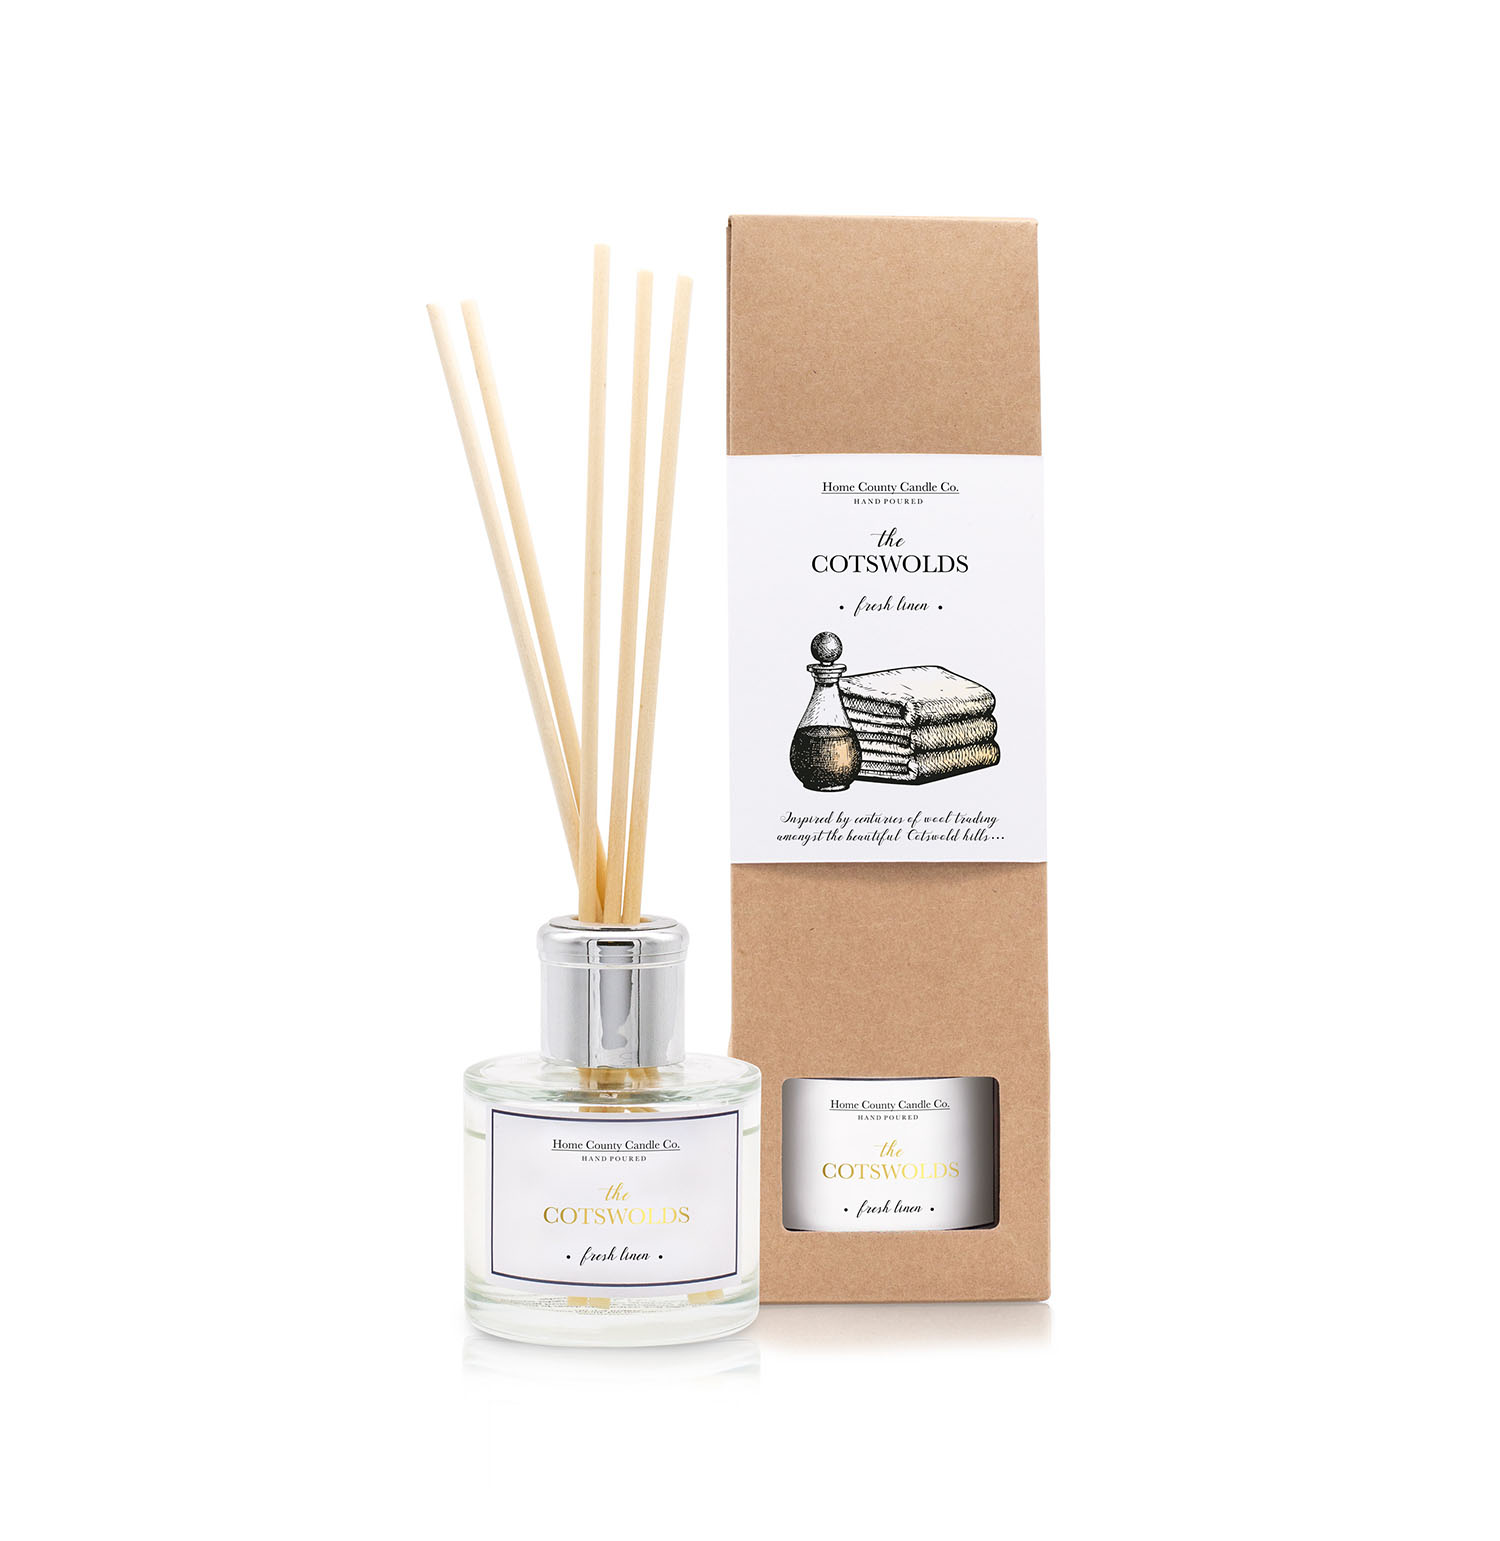 The Cotswolds Reed Diffuser